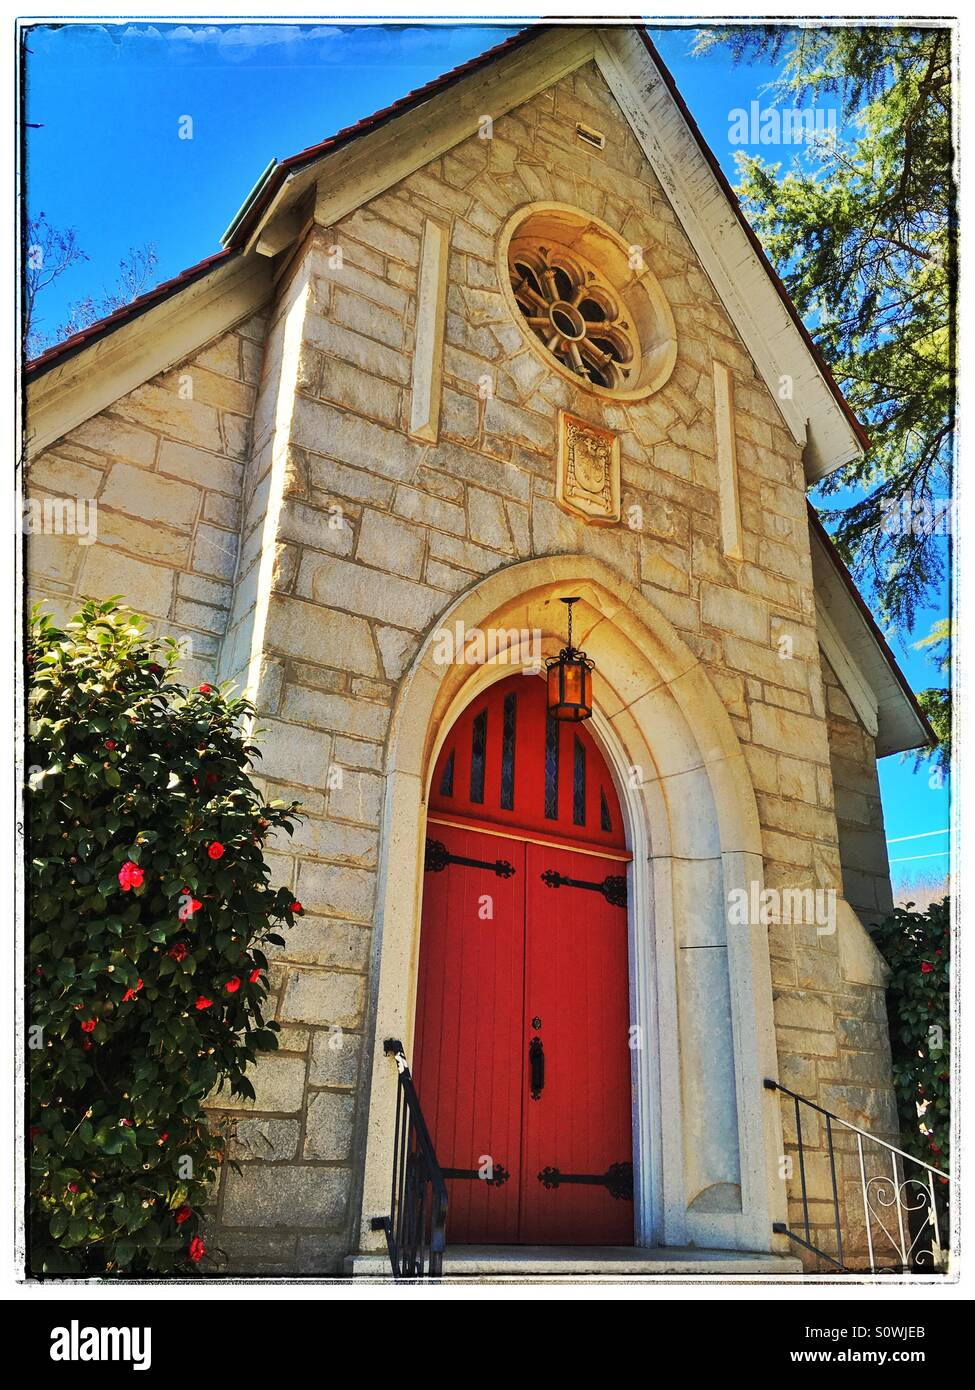 Church front with red doors - Stock Image